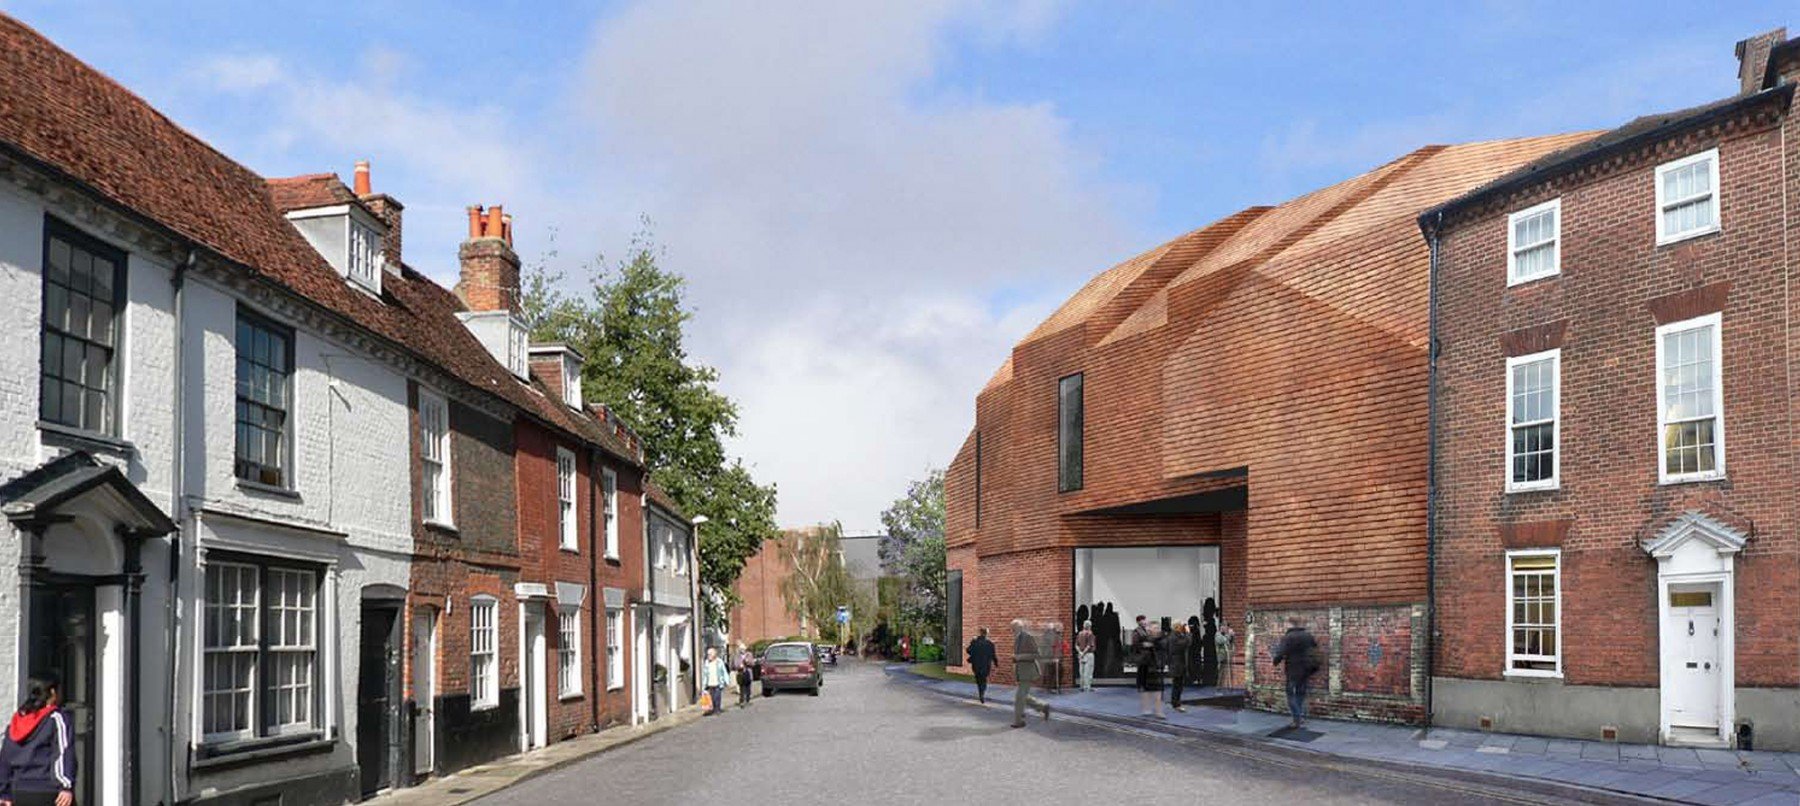 Chichester-district-museum-west-sussex-Roman-baths-competition-RIBA-Short-list-Jamie-Fobert-architects-2